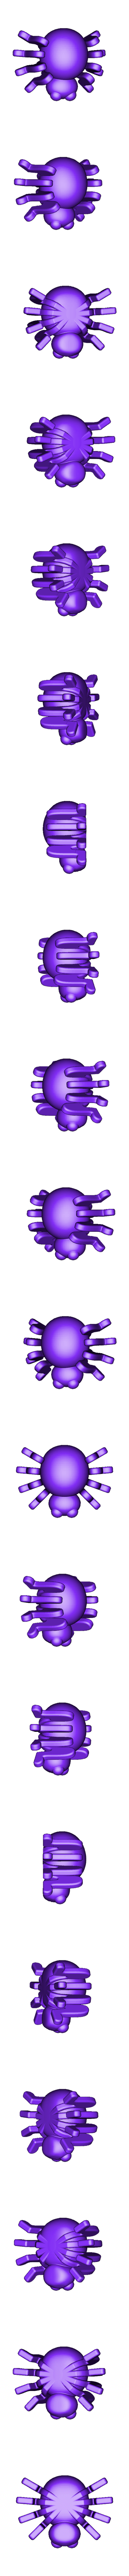 CartoonSpider.stl Download free STL file Small spider • Model to 3D print, Shigeryu